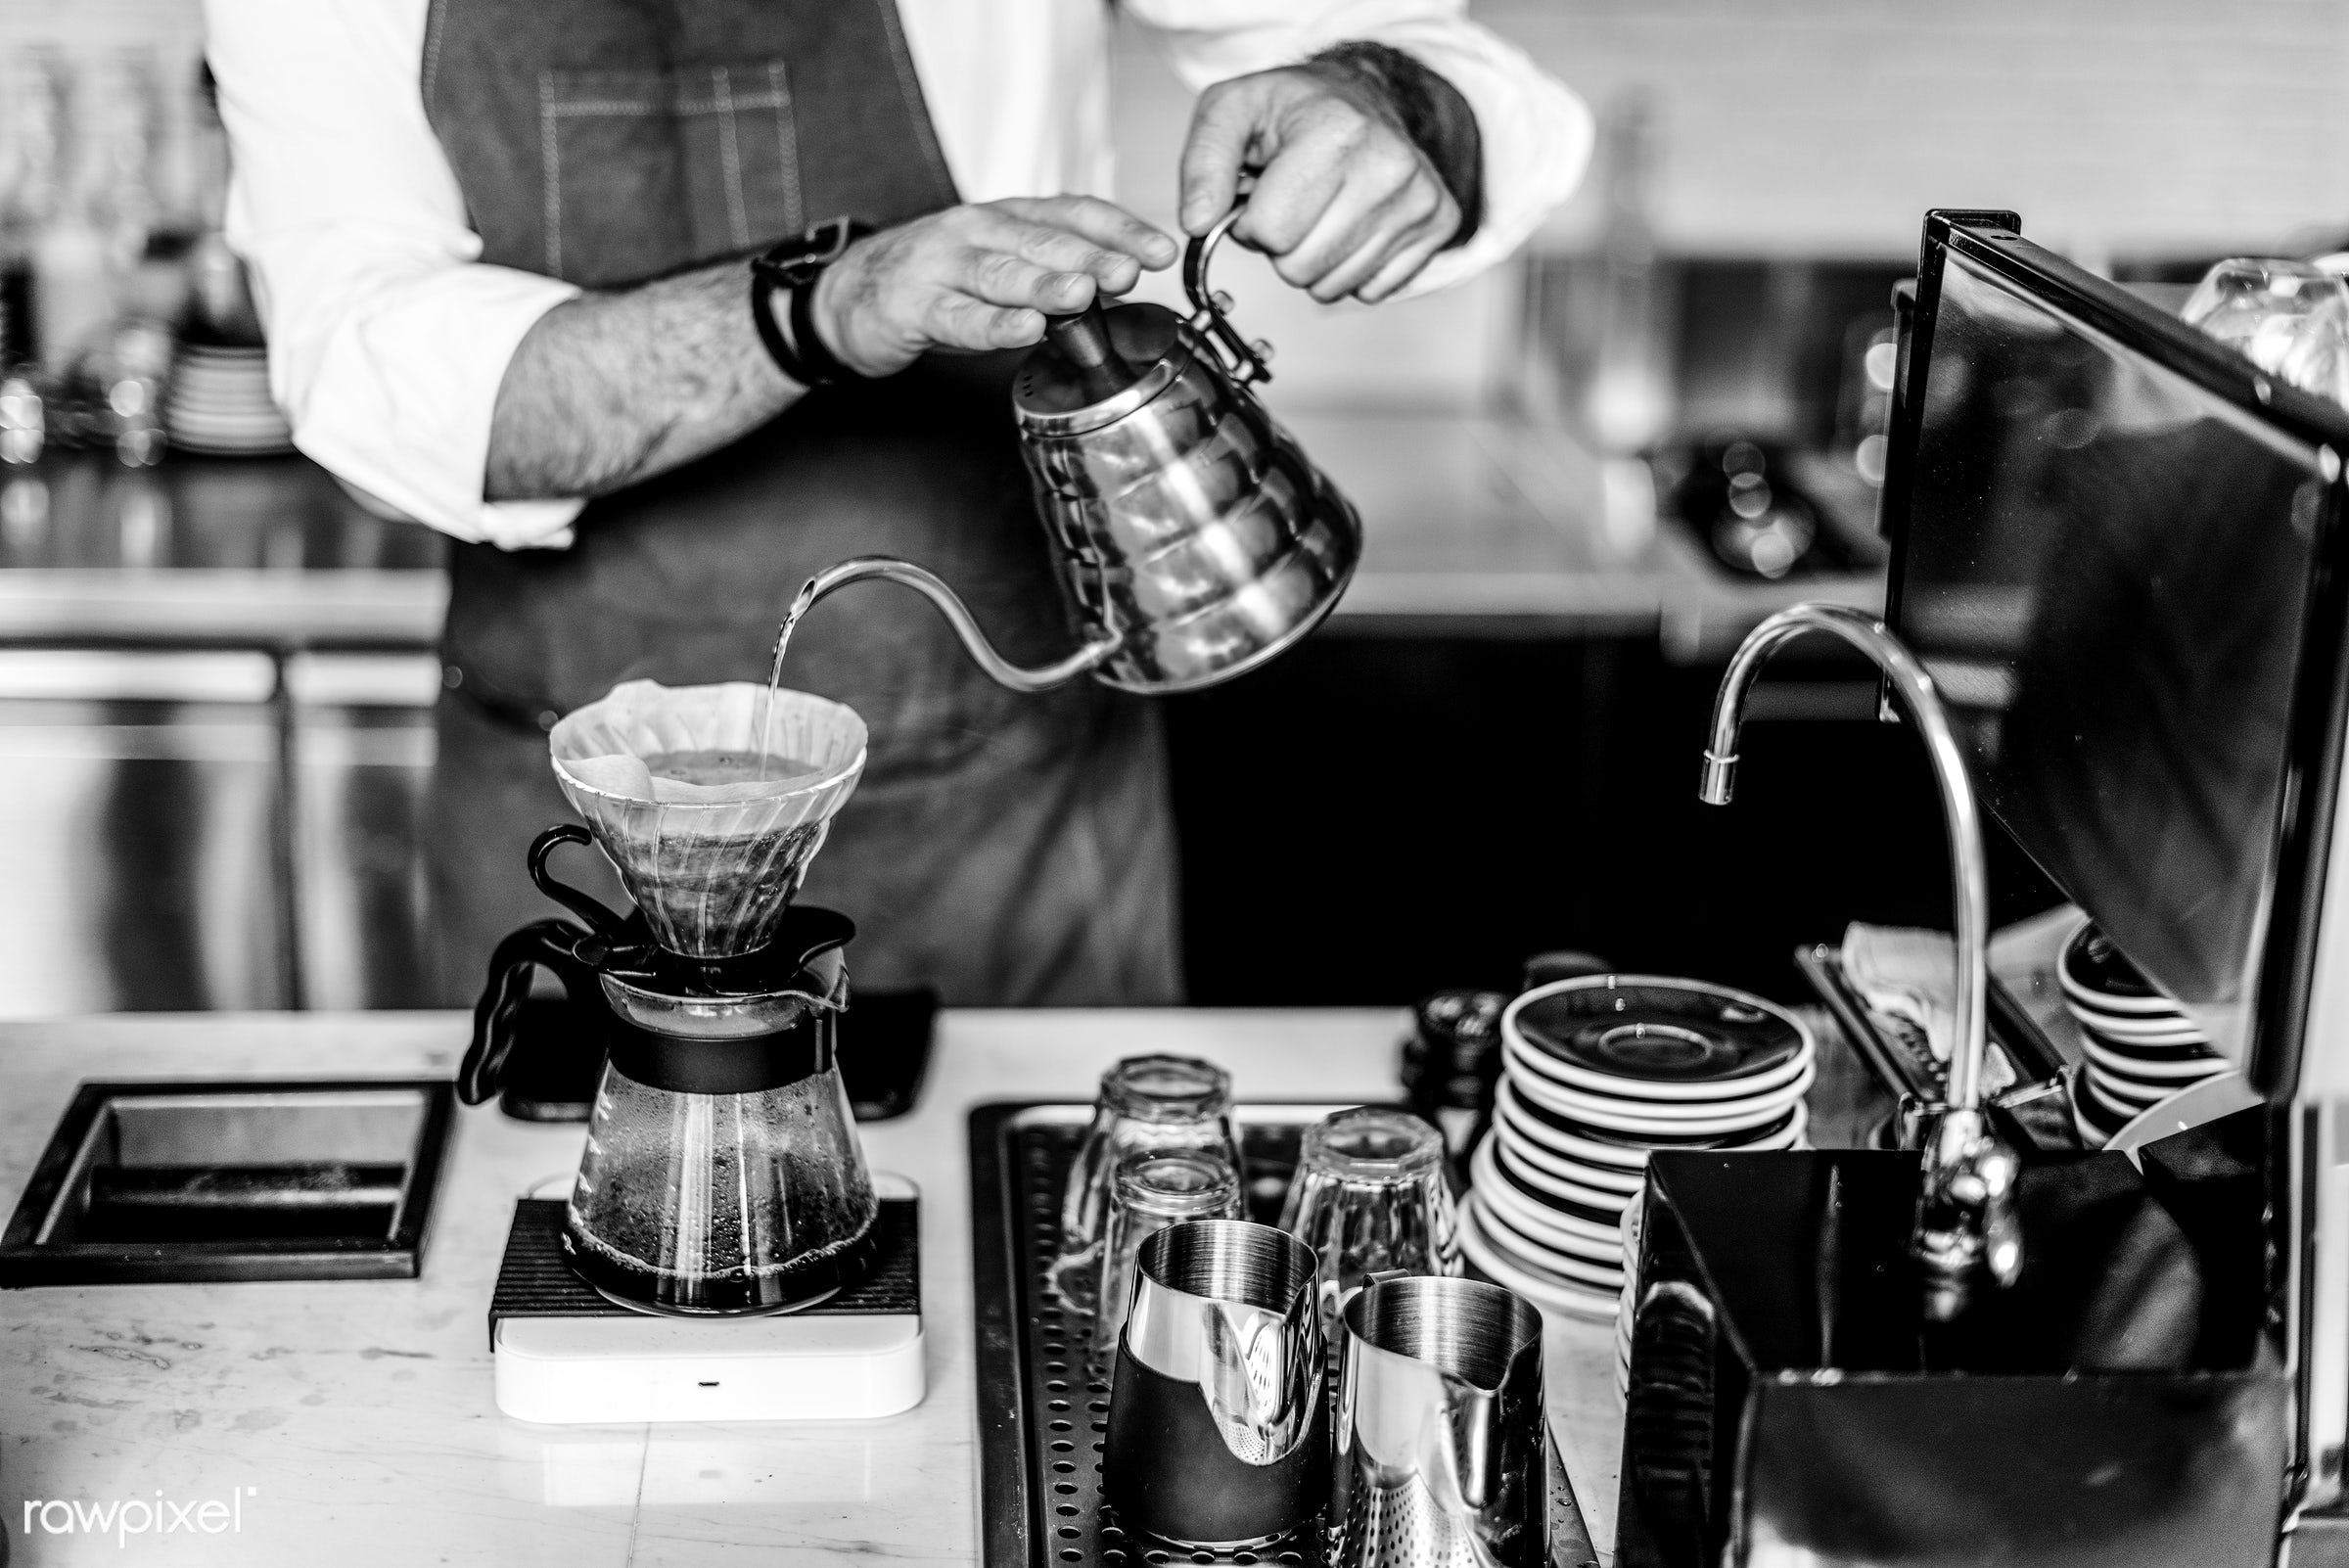 appliance, apron, attractive, bar, barista, business, cafe, cafeteria, coffee, coffee mill, coffee shop, counter, cup, day,...